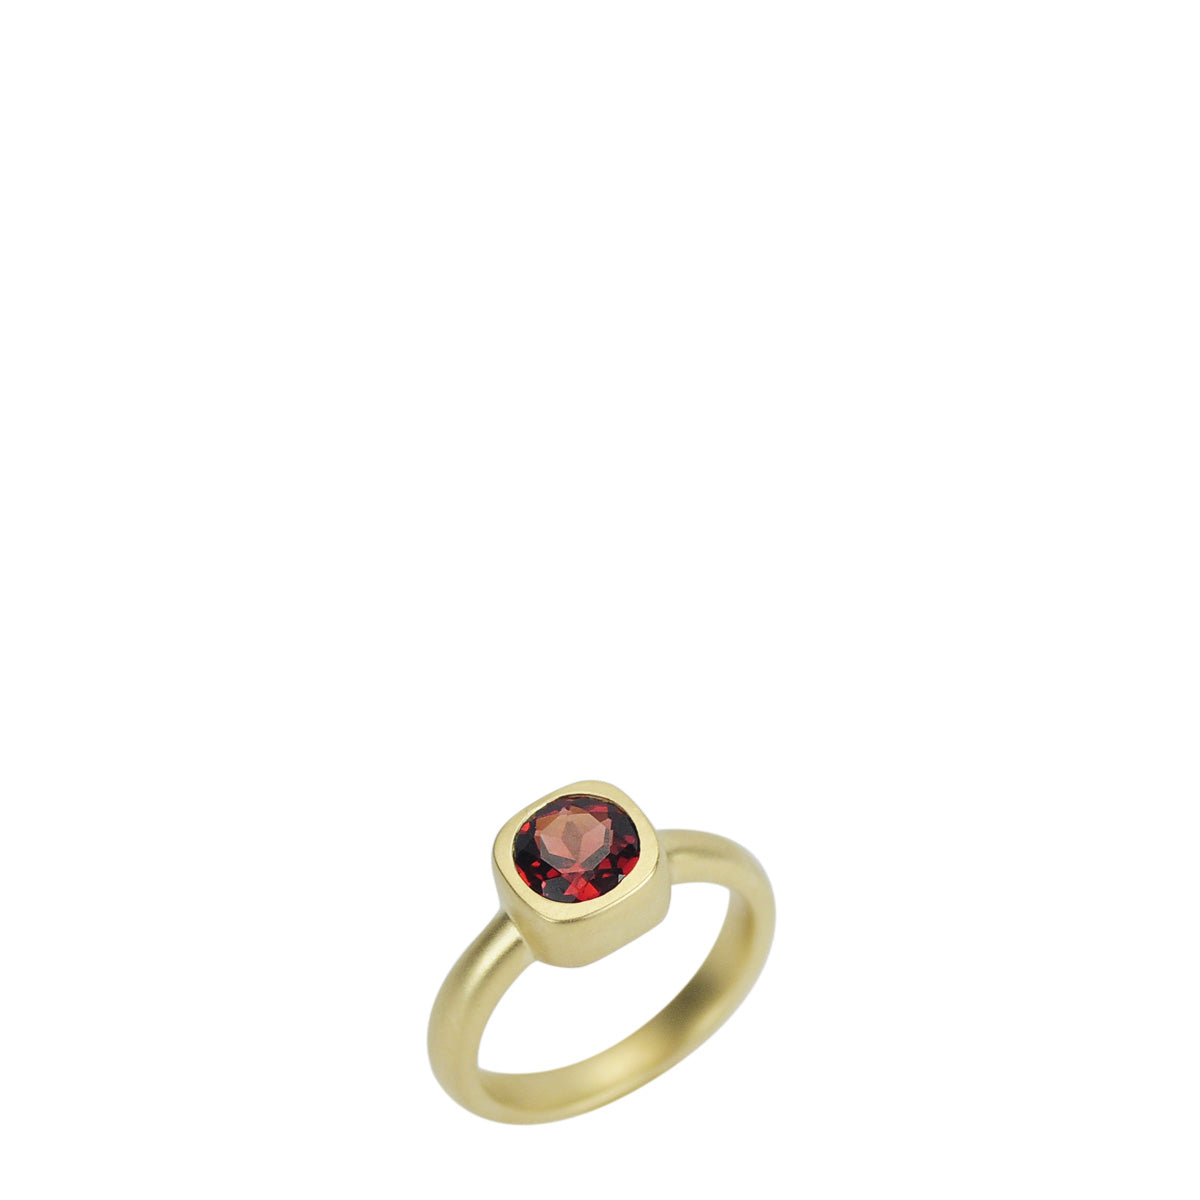 18K Gold 6MM Round Garnet Ring